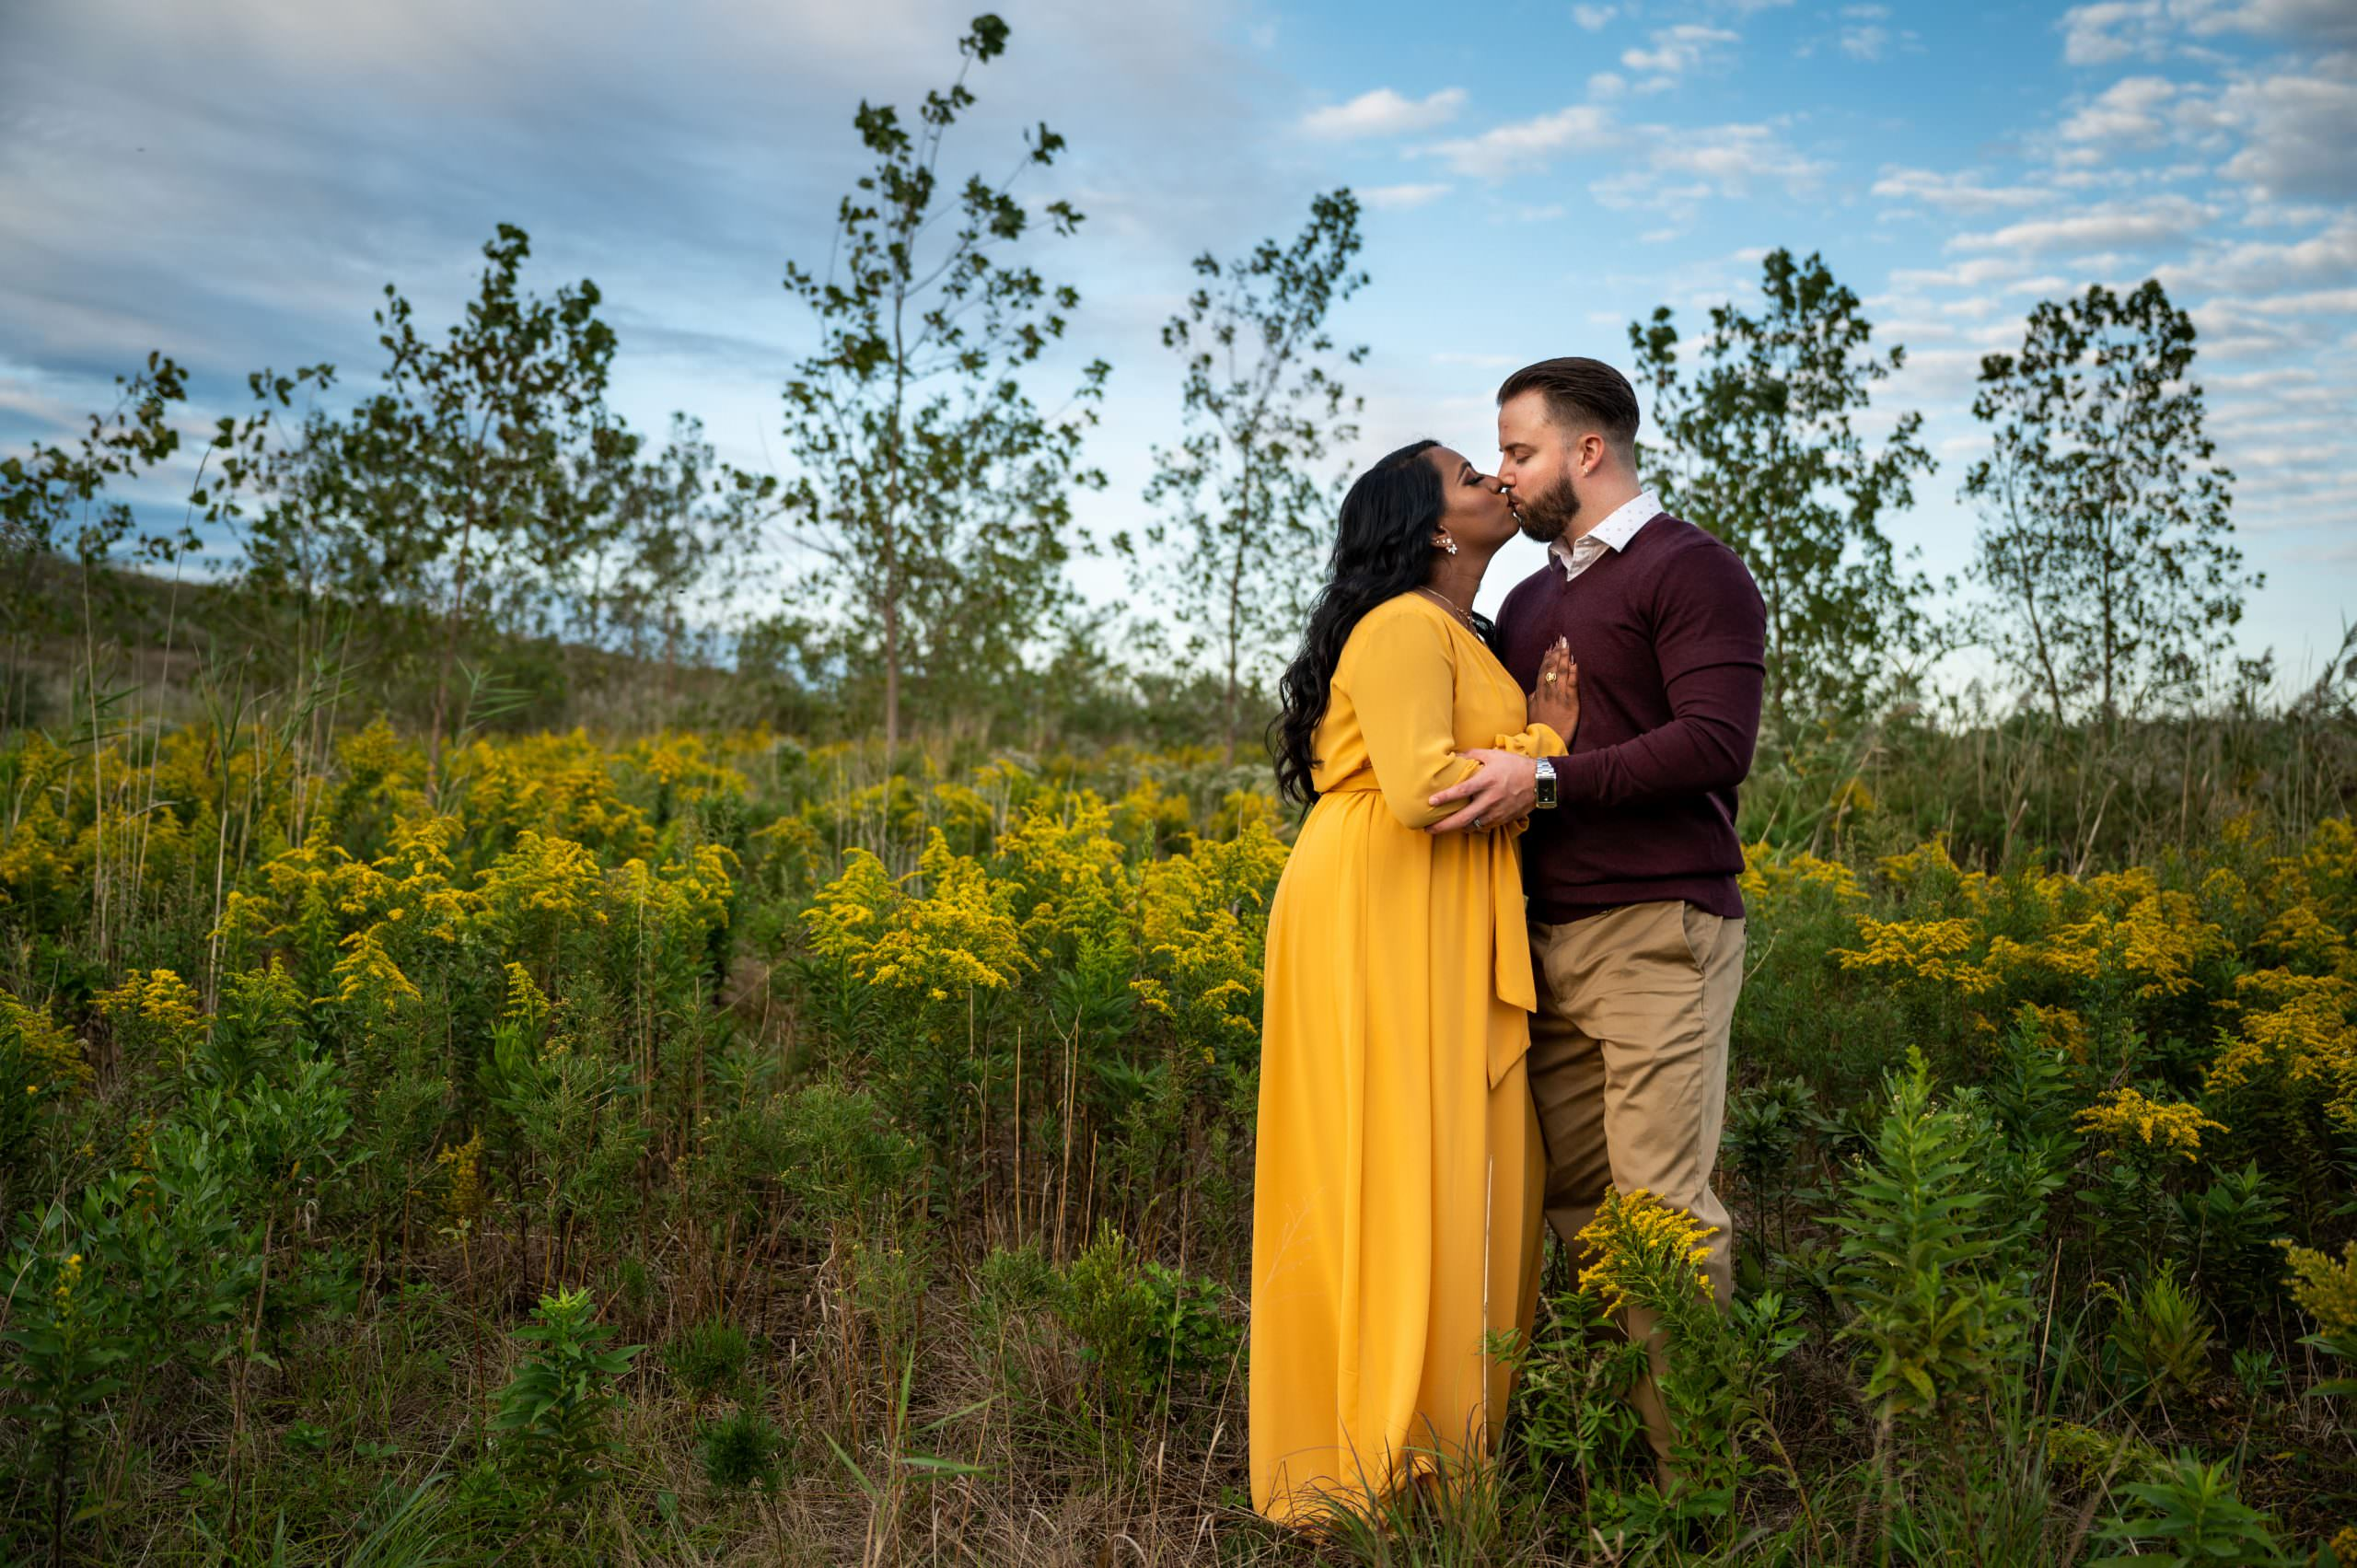 A couple kissing by a body of flowers with the open sky in the background